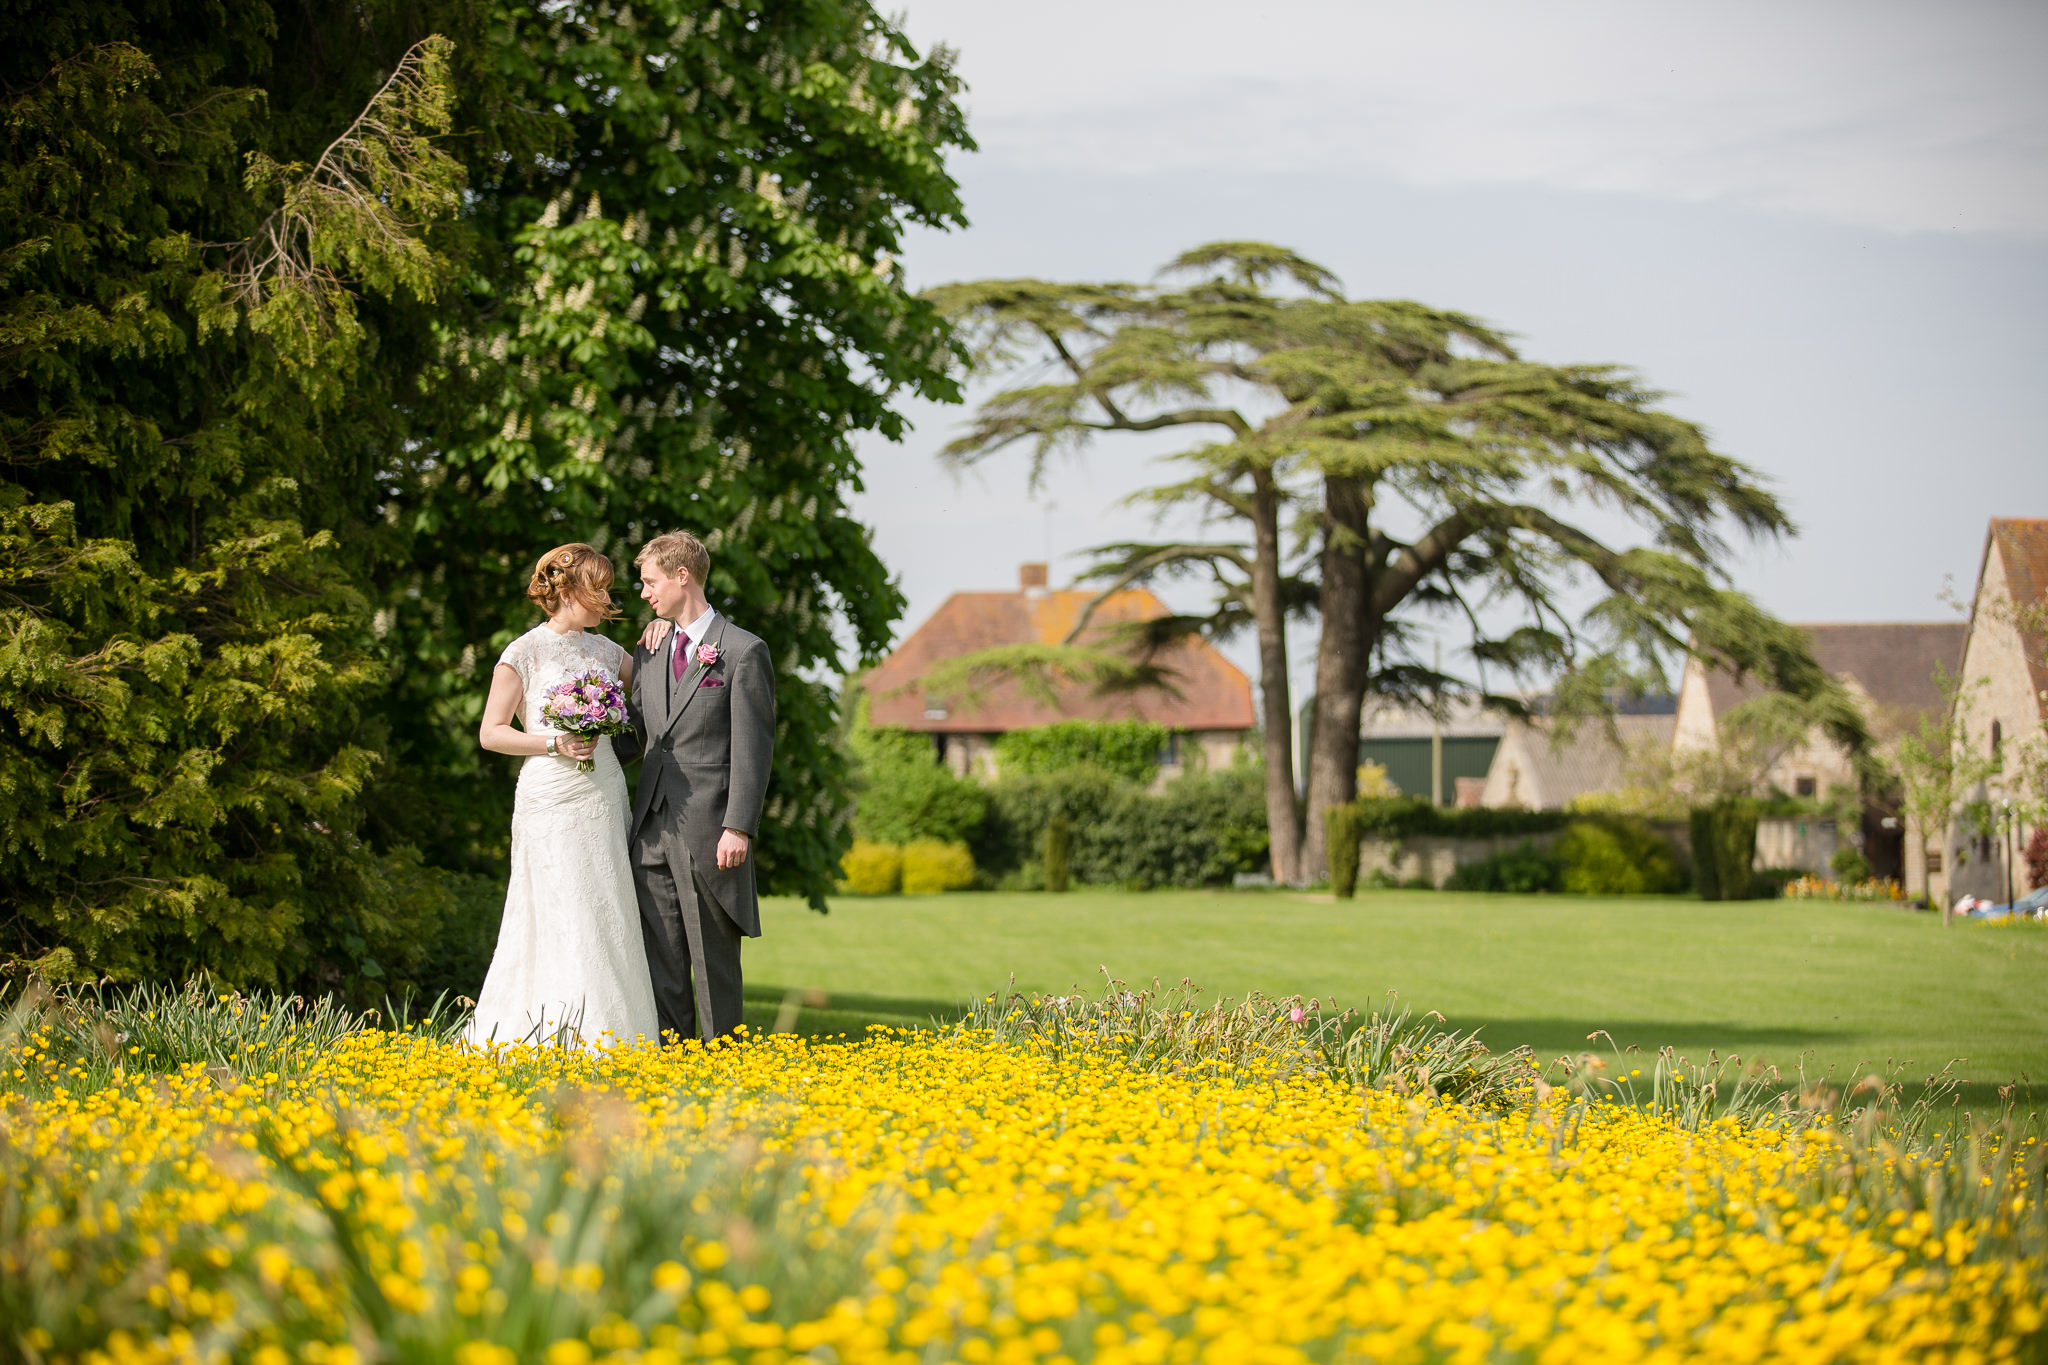 Reportage-Style-Wedding-Photography-At-Silchester-House